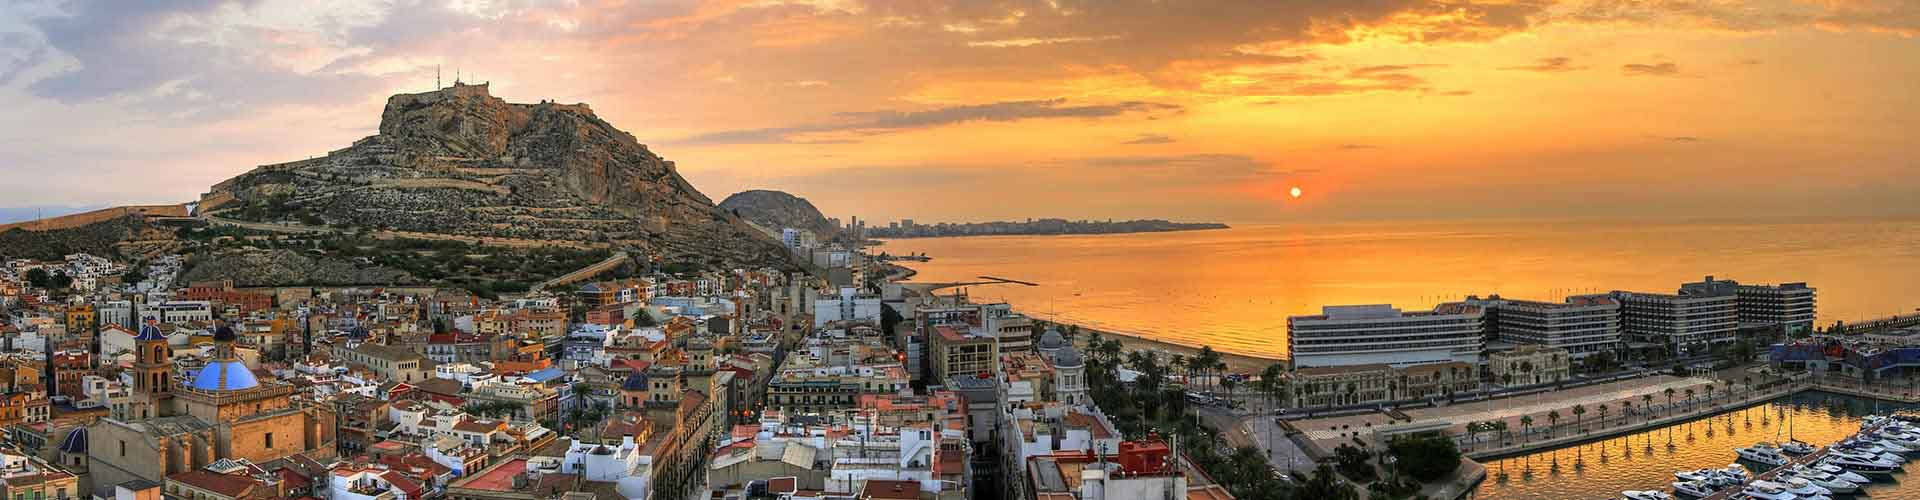 Alicante – Hostels in the Cabo de las Huertas district. Maps for Alicante, Photos and Reviews for each hostel in Alicante.